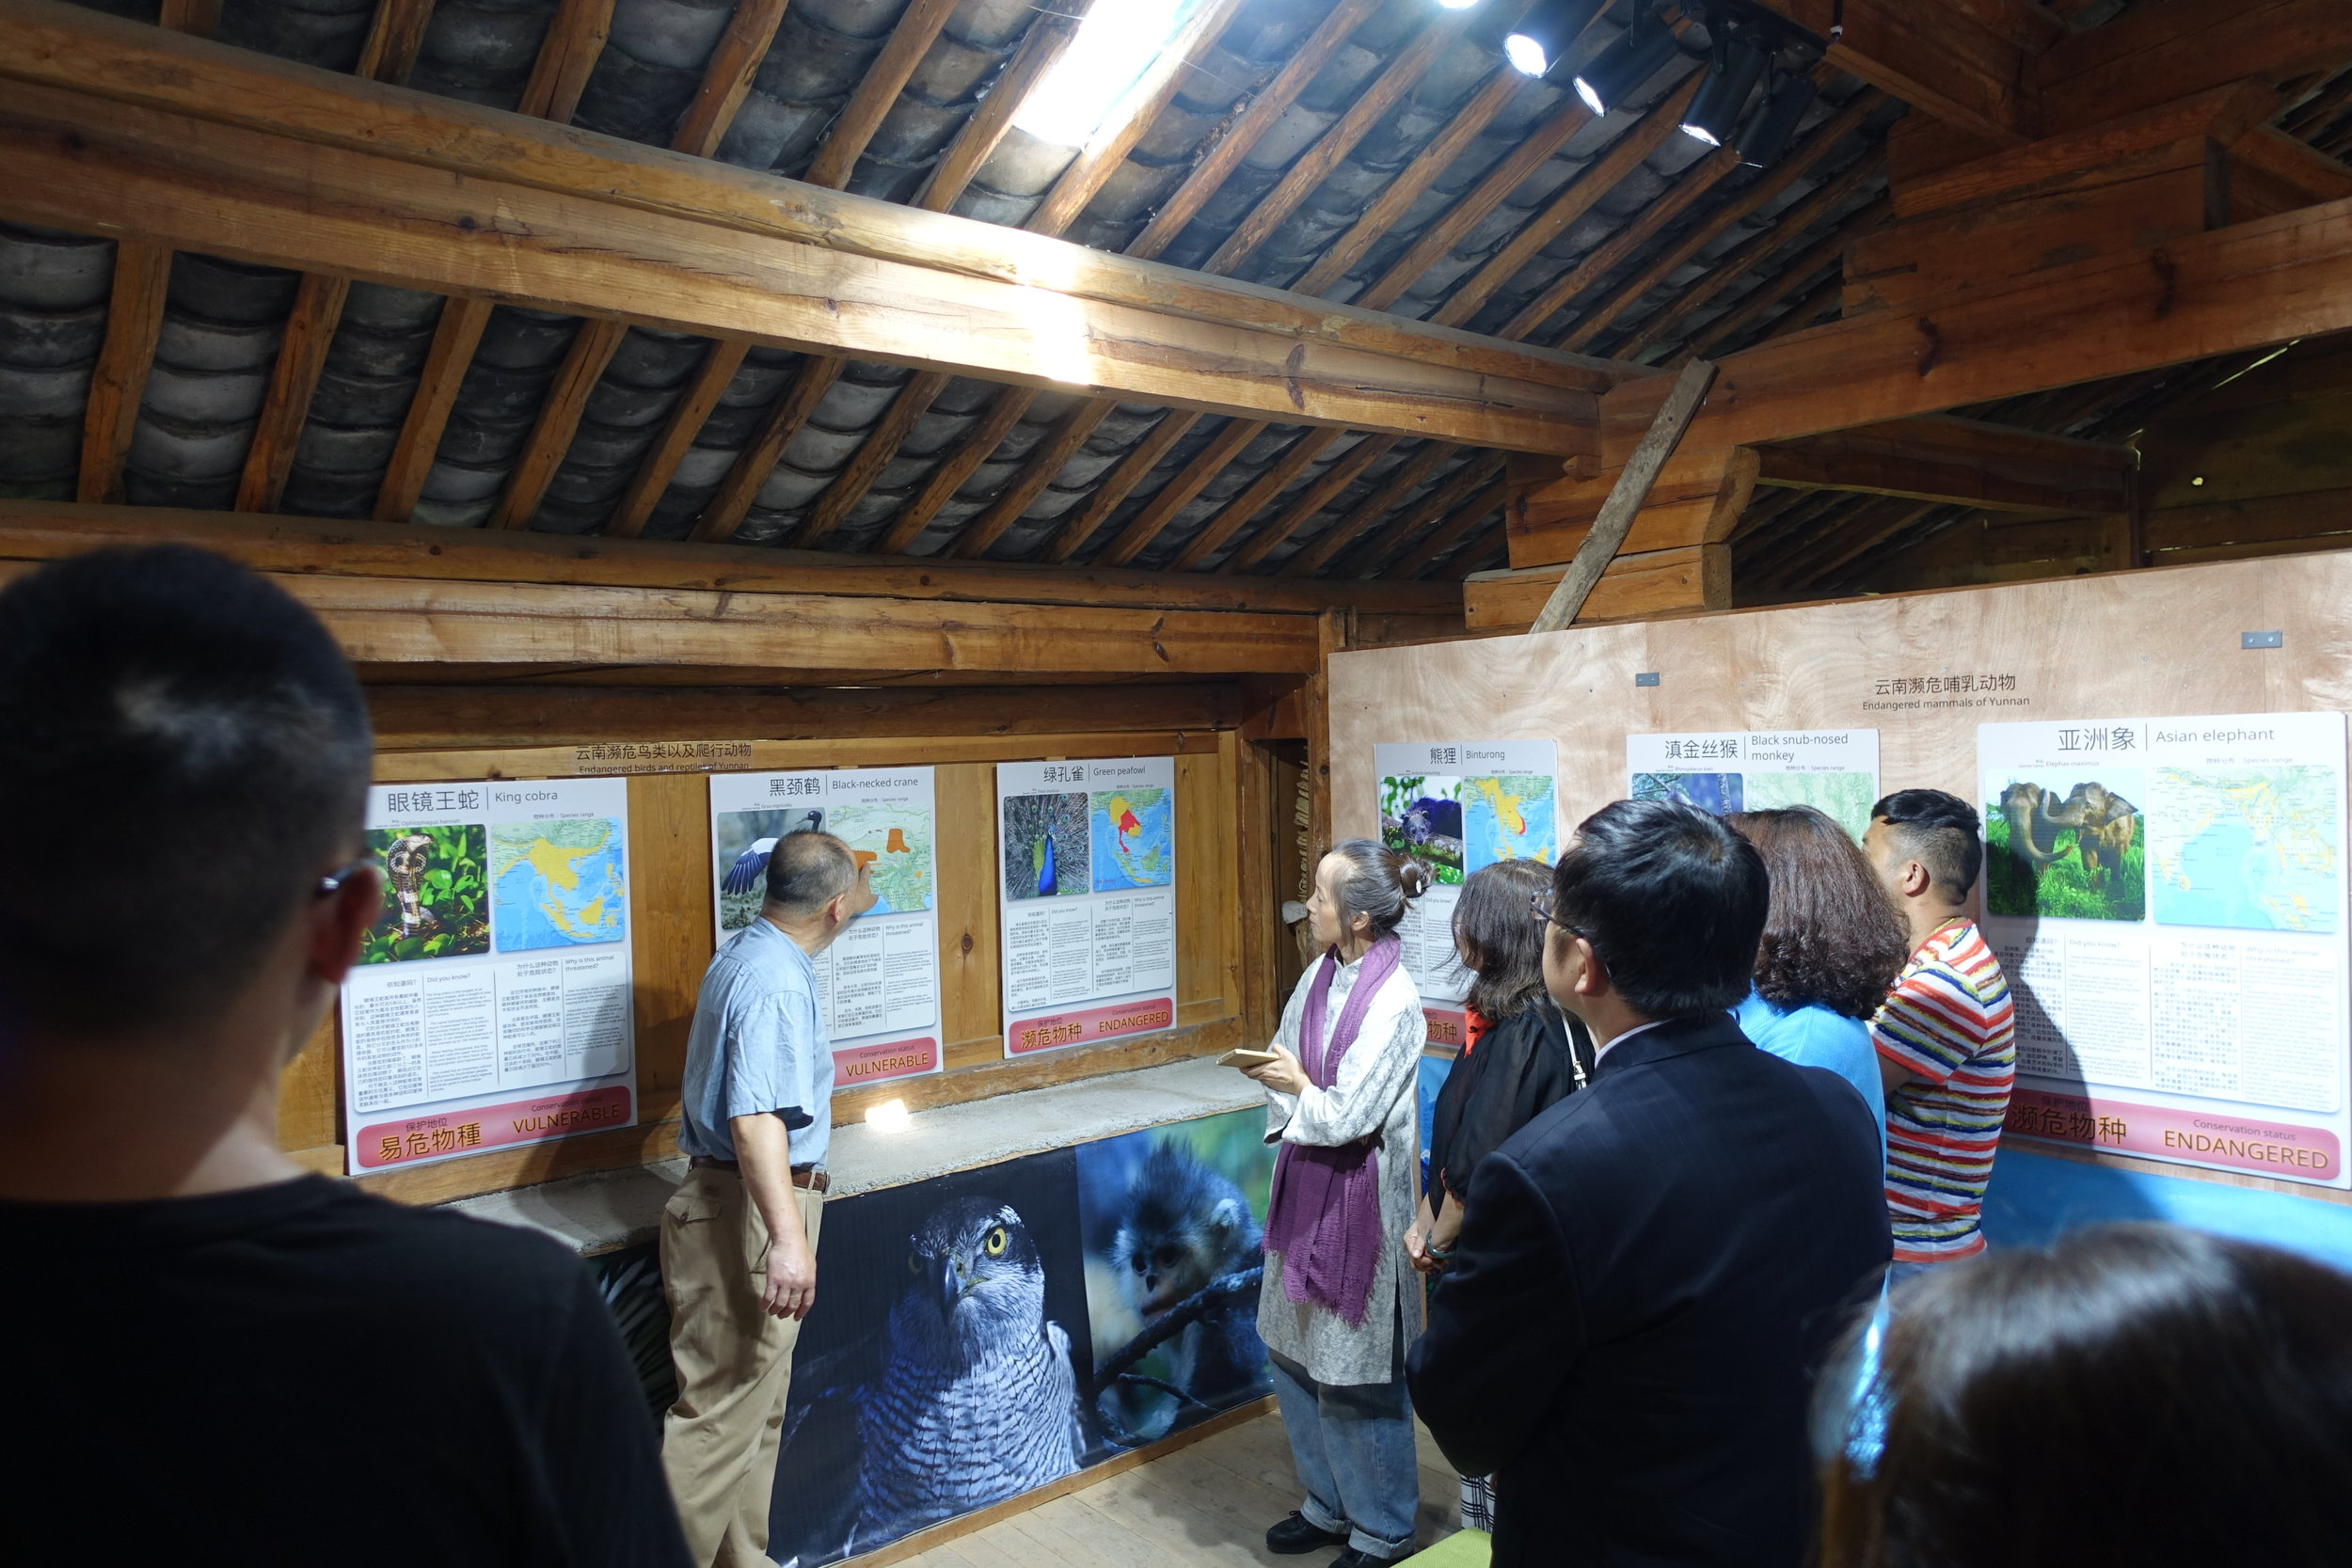 Yongsong Chen is guiding the visitors through the exhibition